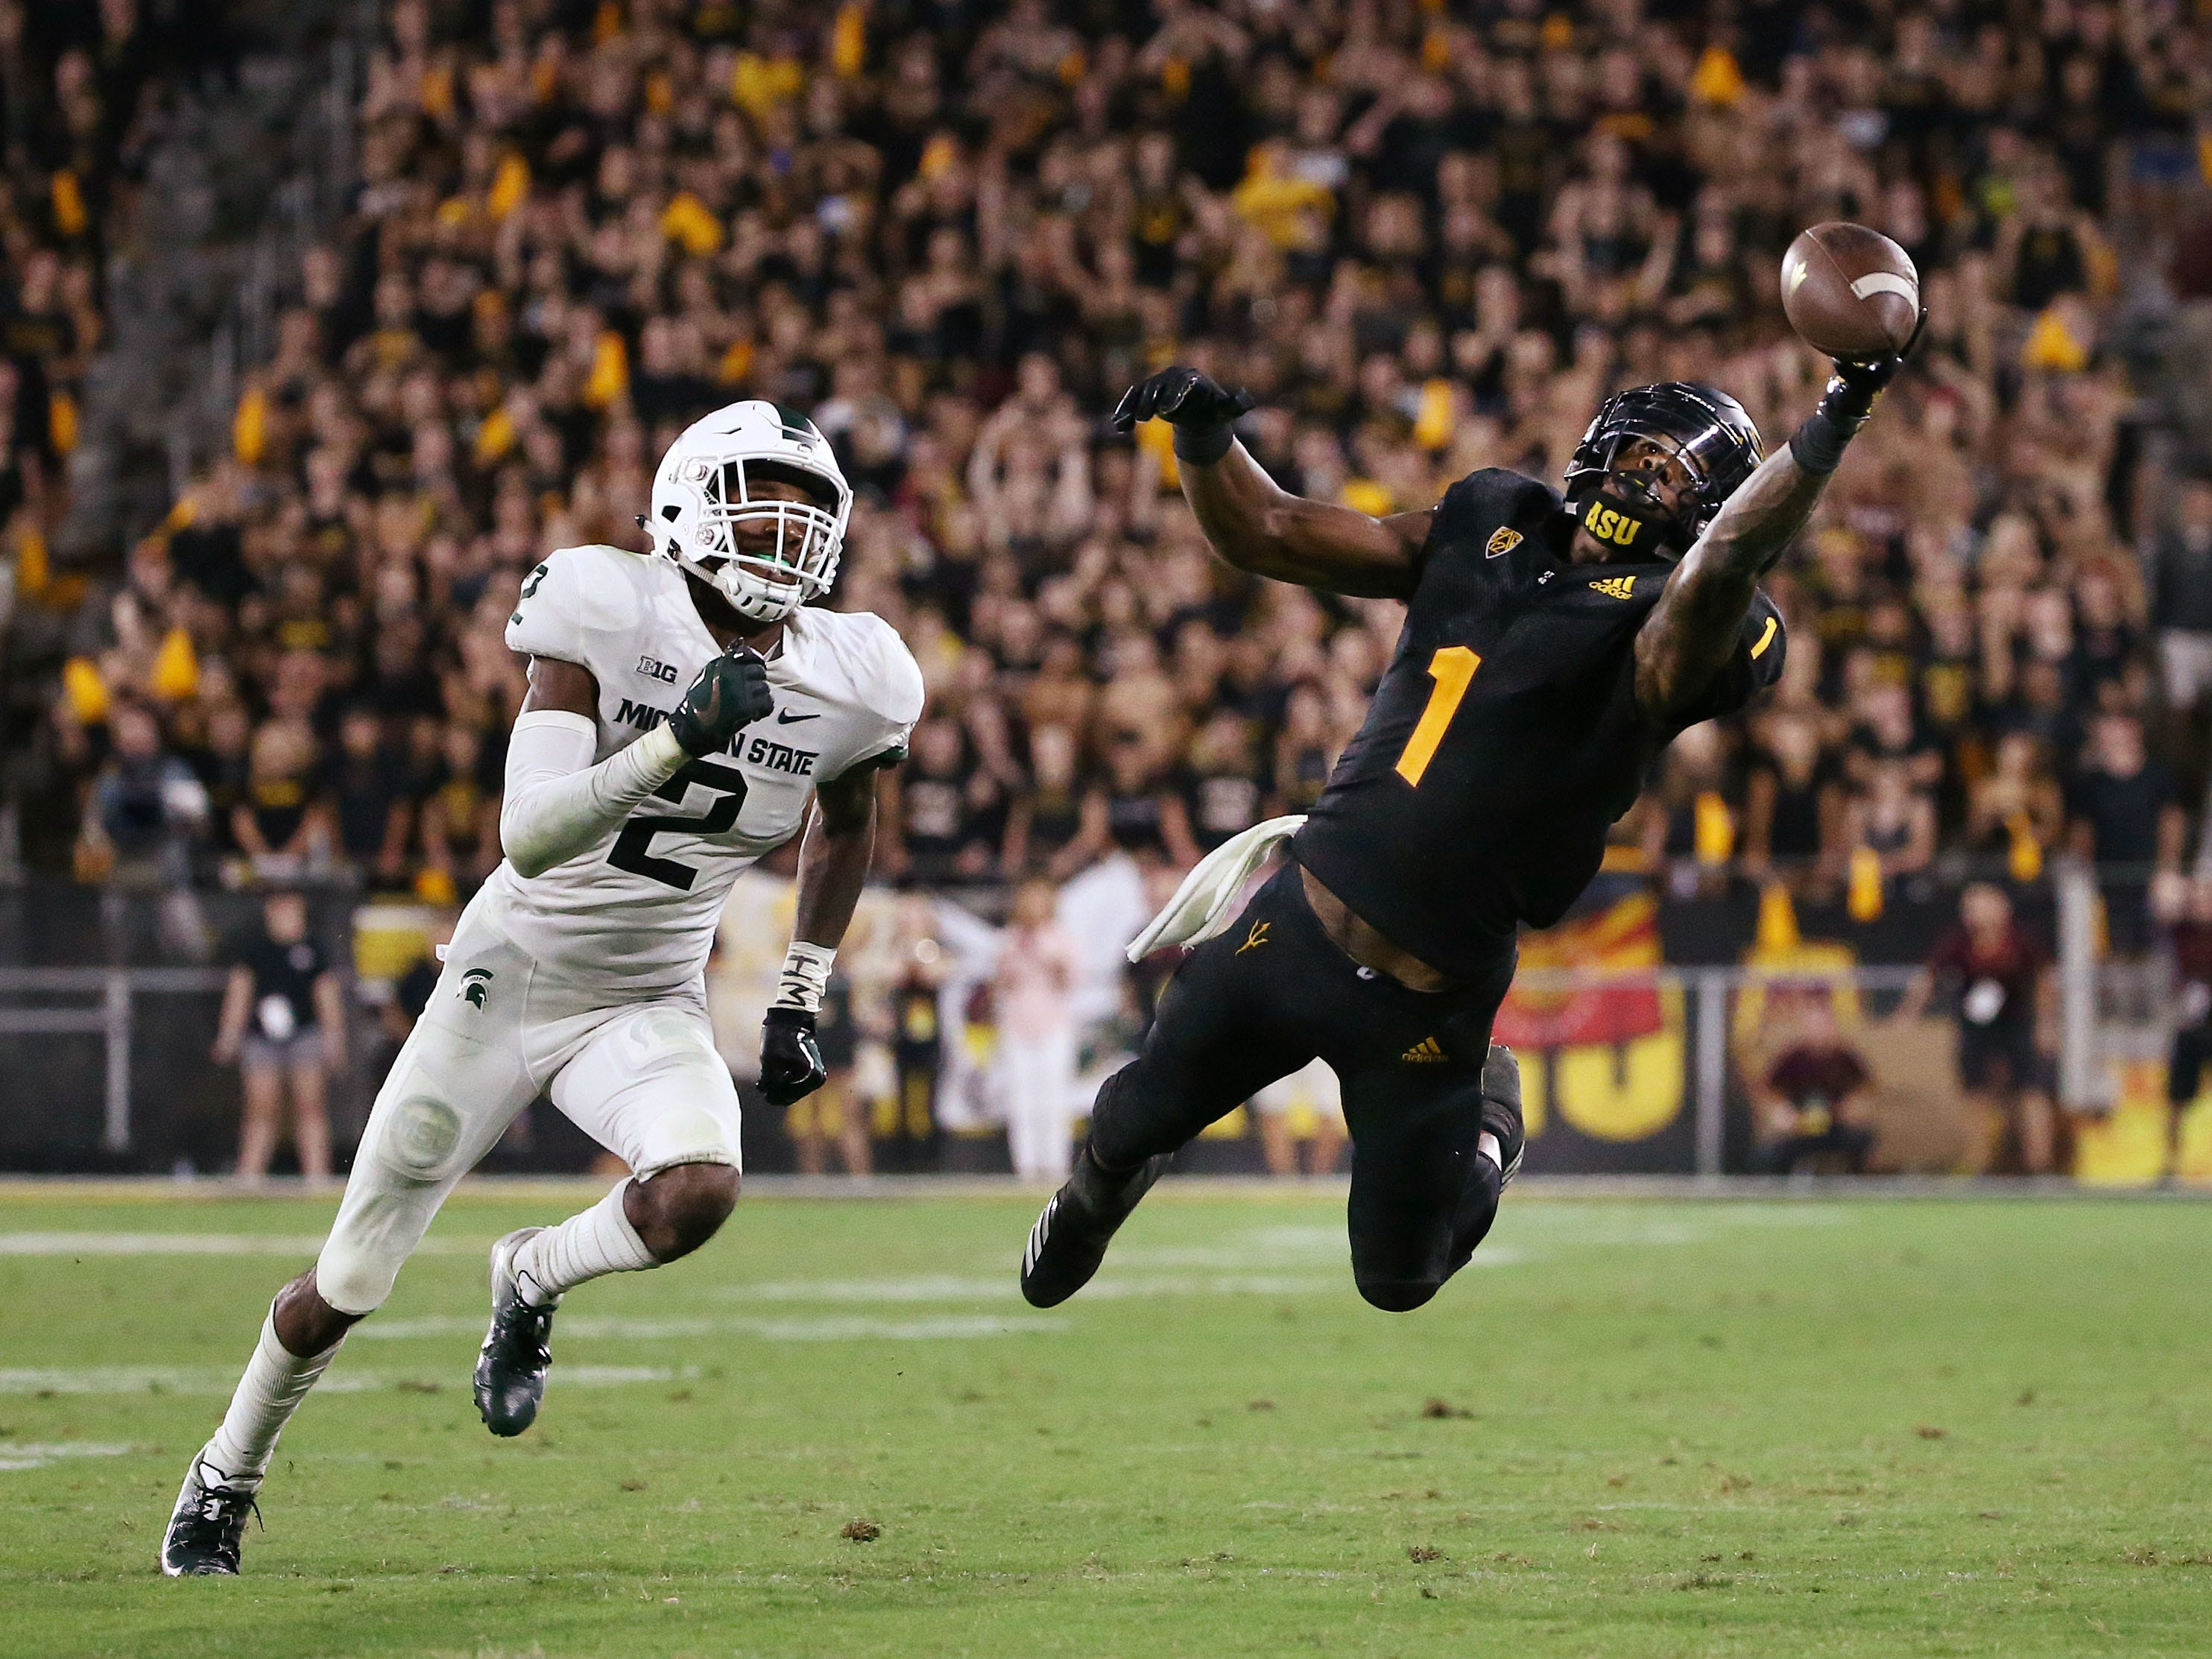 Arizona State wide receiver N'Keal Harry dives for the ball against Michigan State in the second half on Sep. 8, 2018, at Sun Devil Stadium.